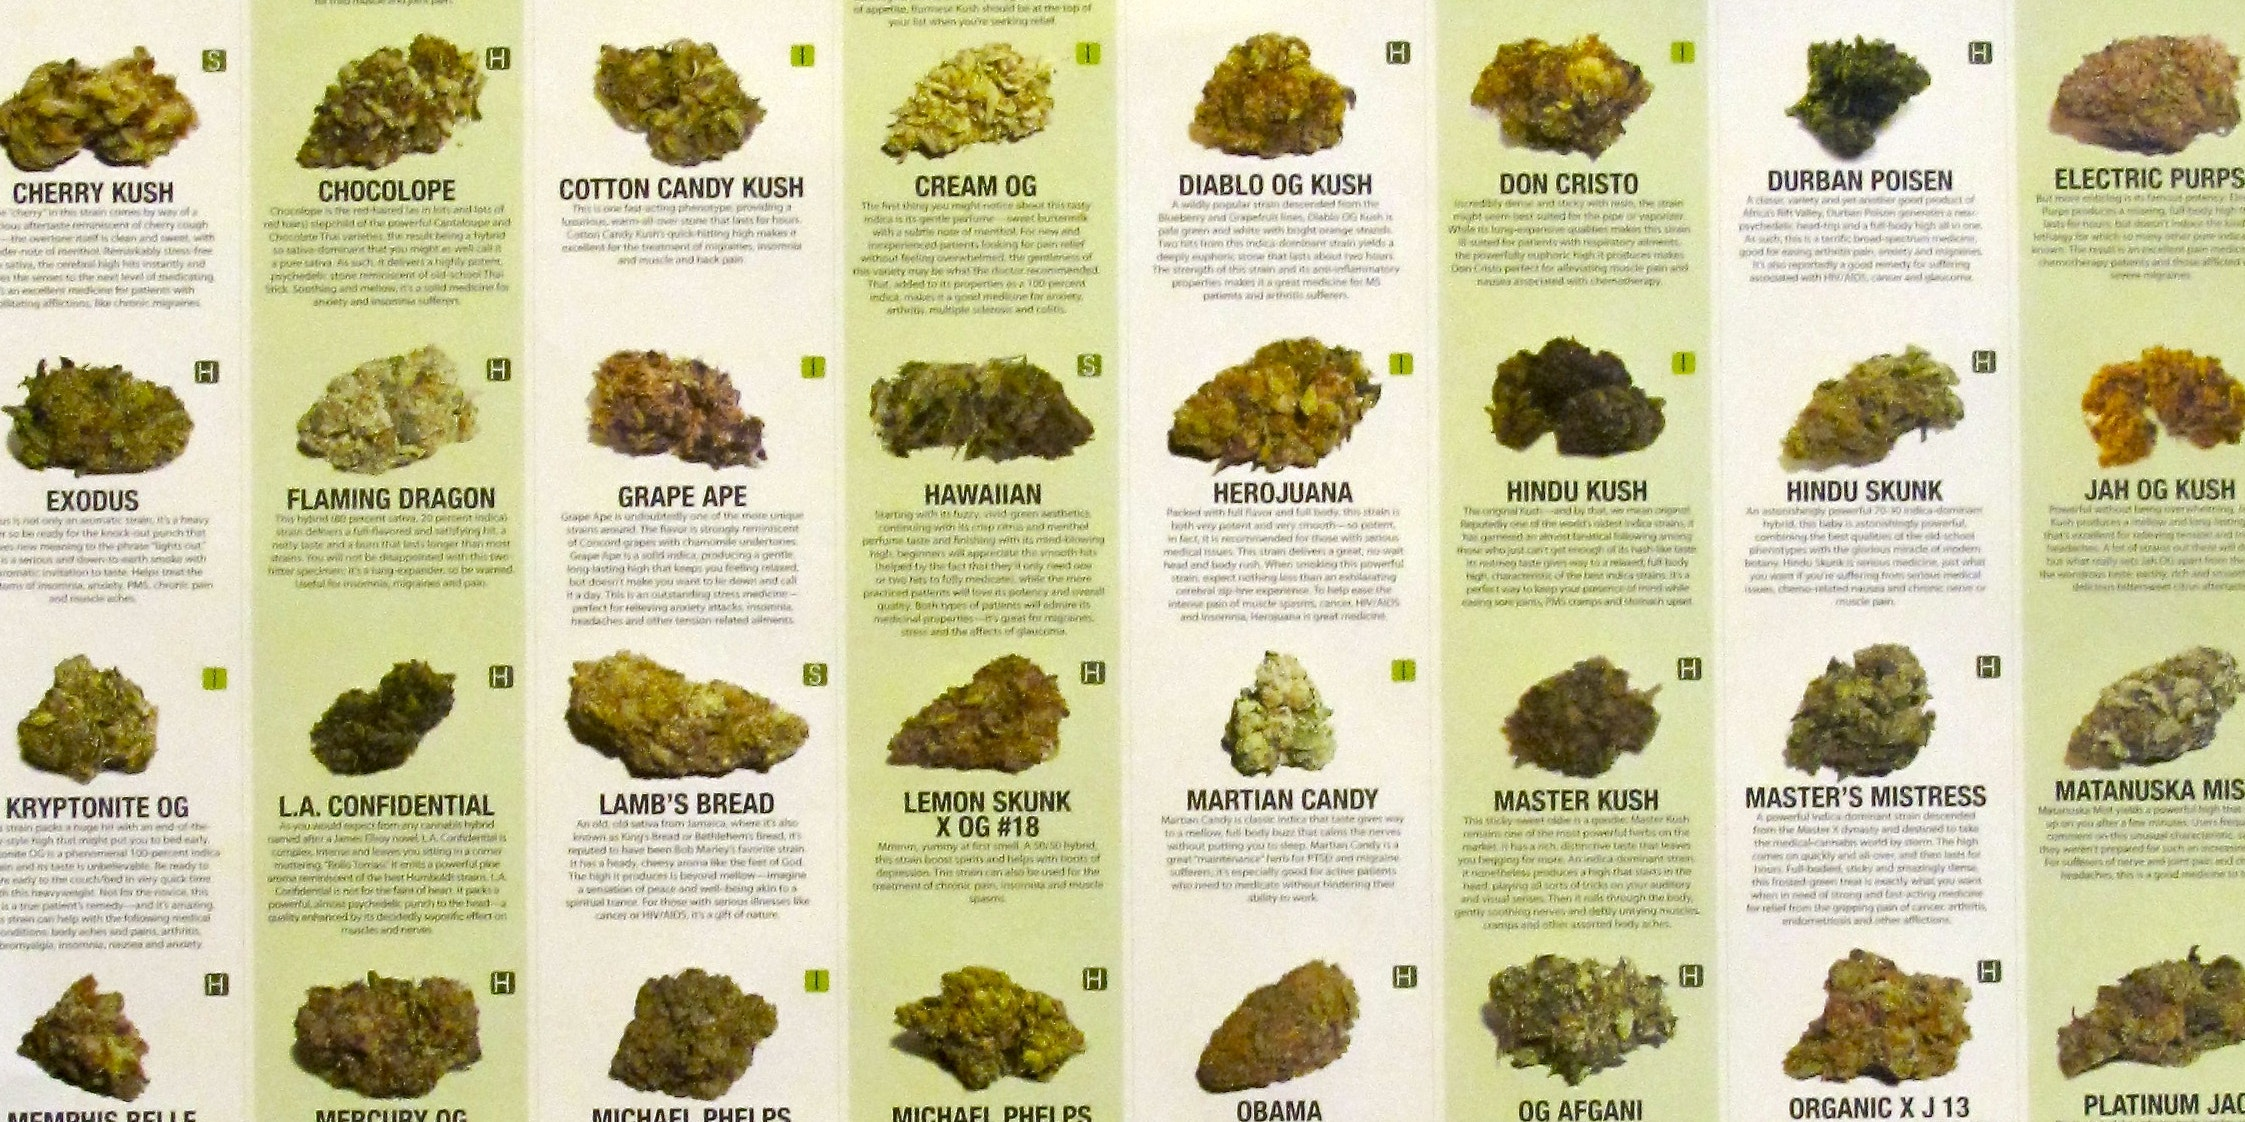 Weed Strain Names Don't Indicate Any Genetic Differences ...